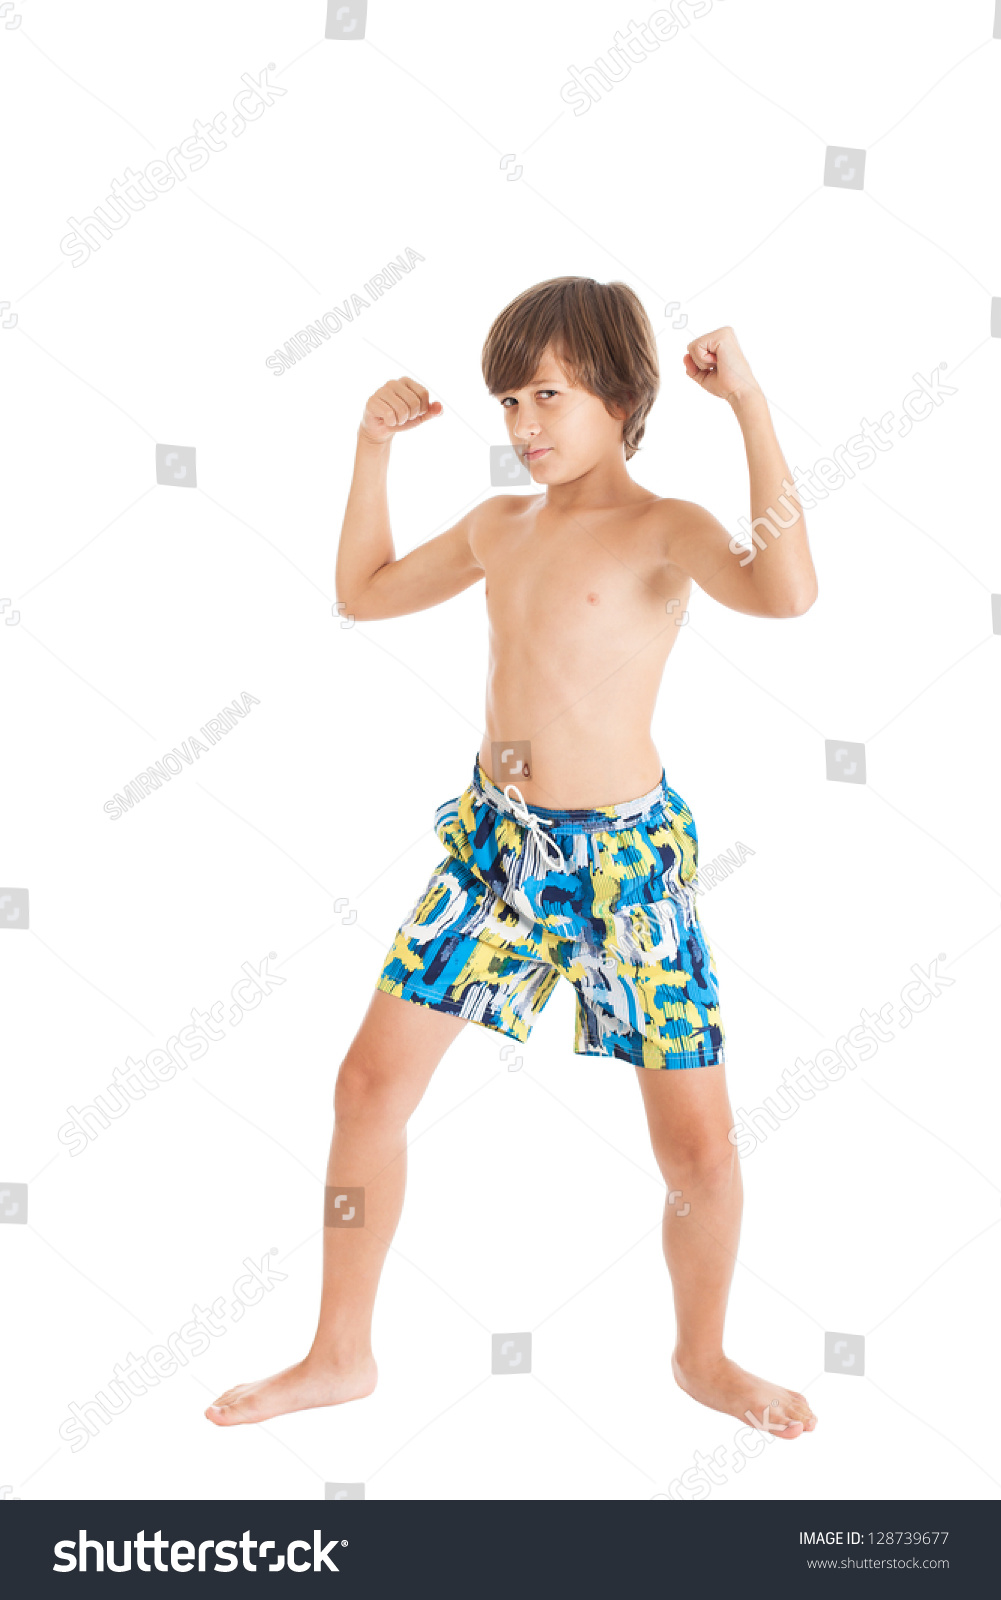 teenboy naked Cute European teen boy in swimming shorts with a naked torso shows biceps.  Studio shot